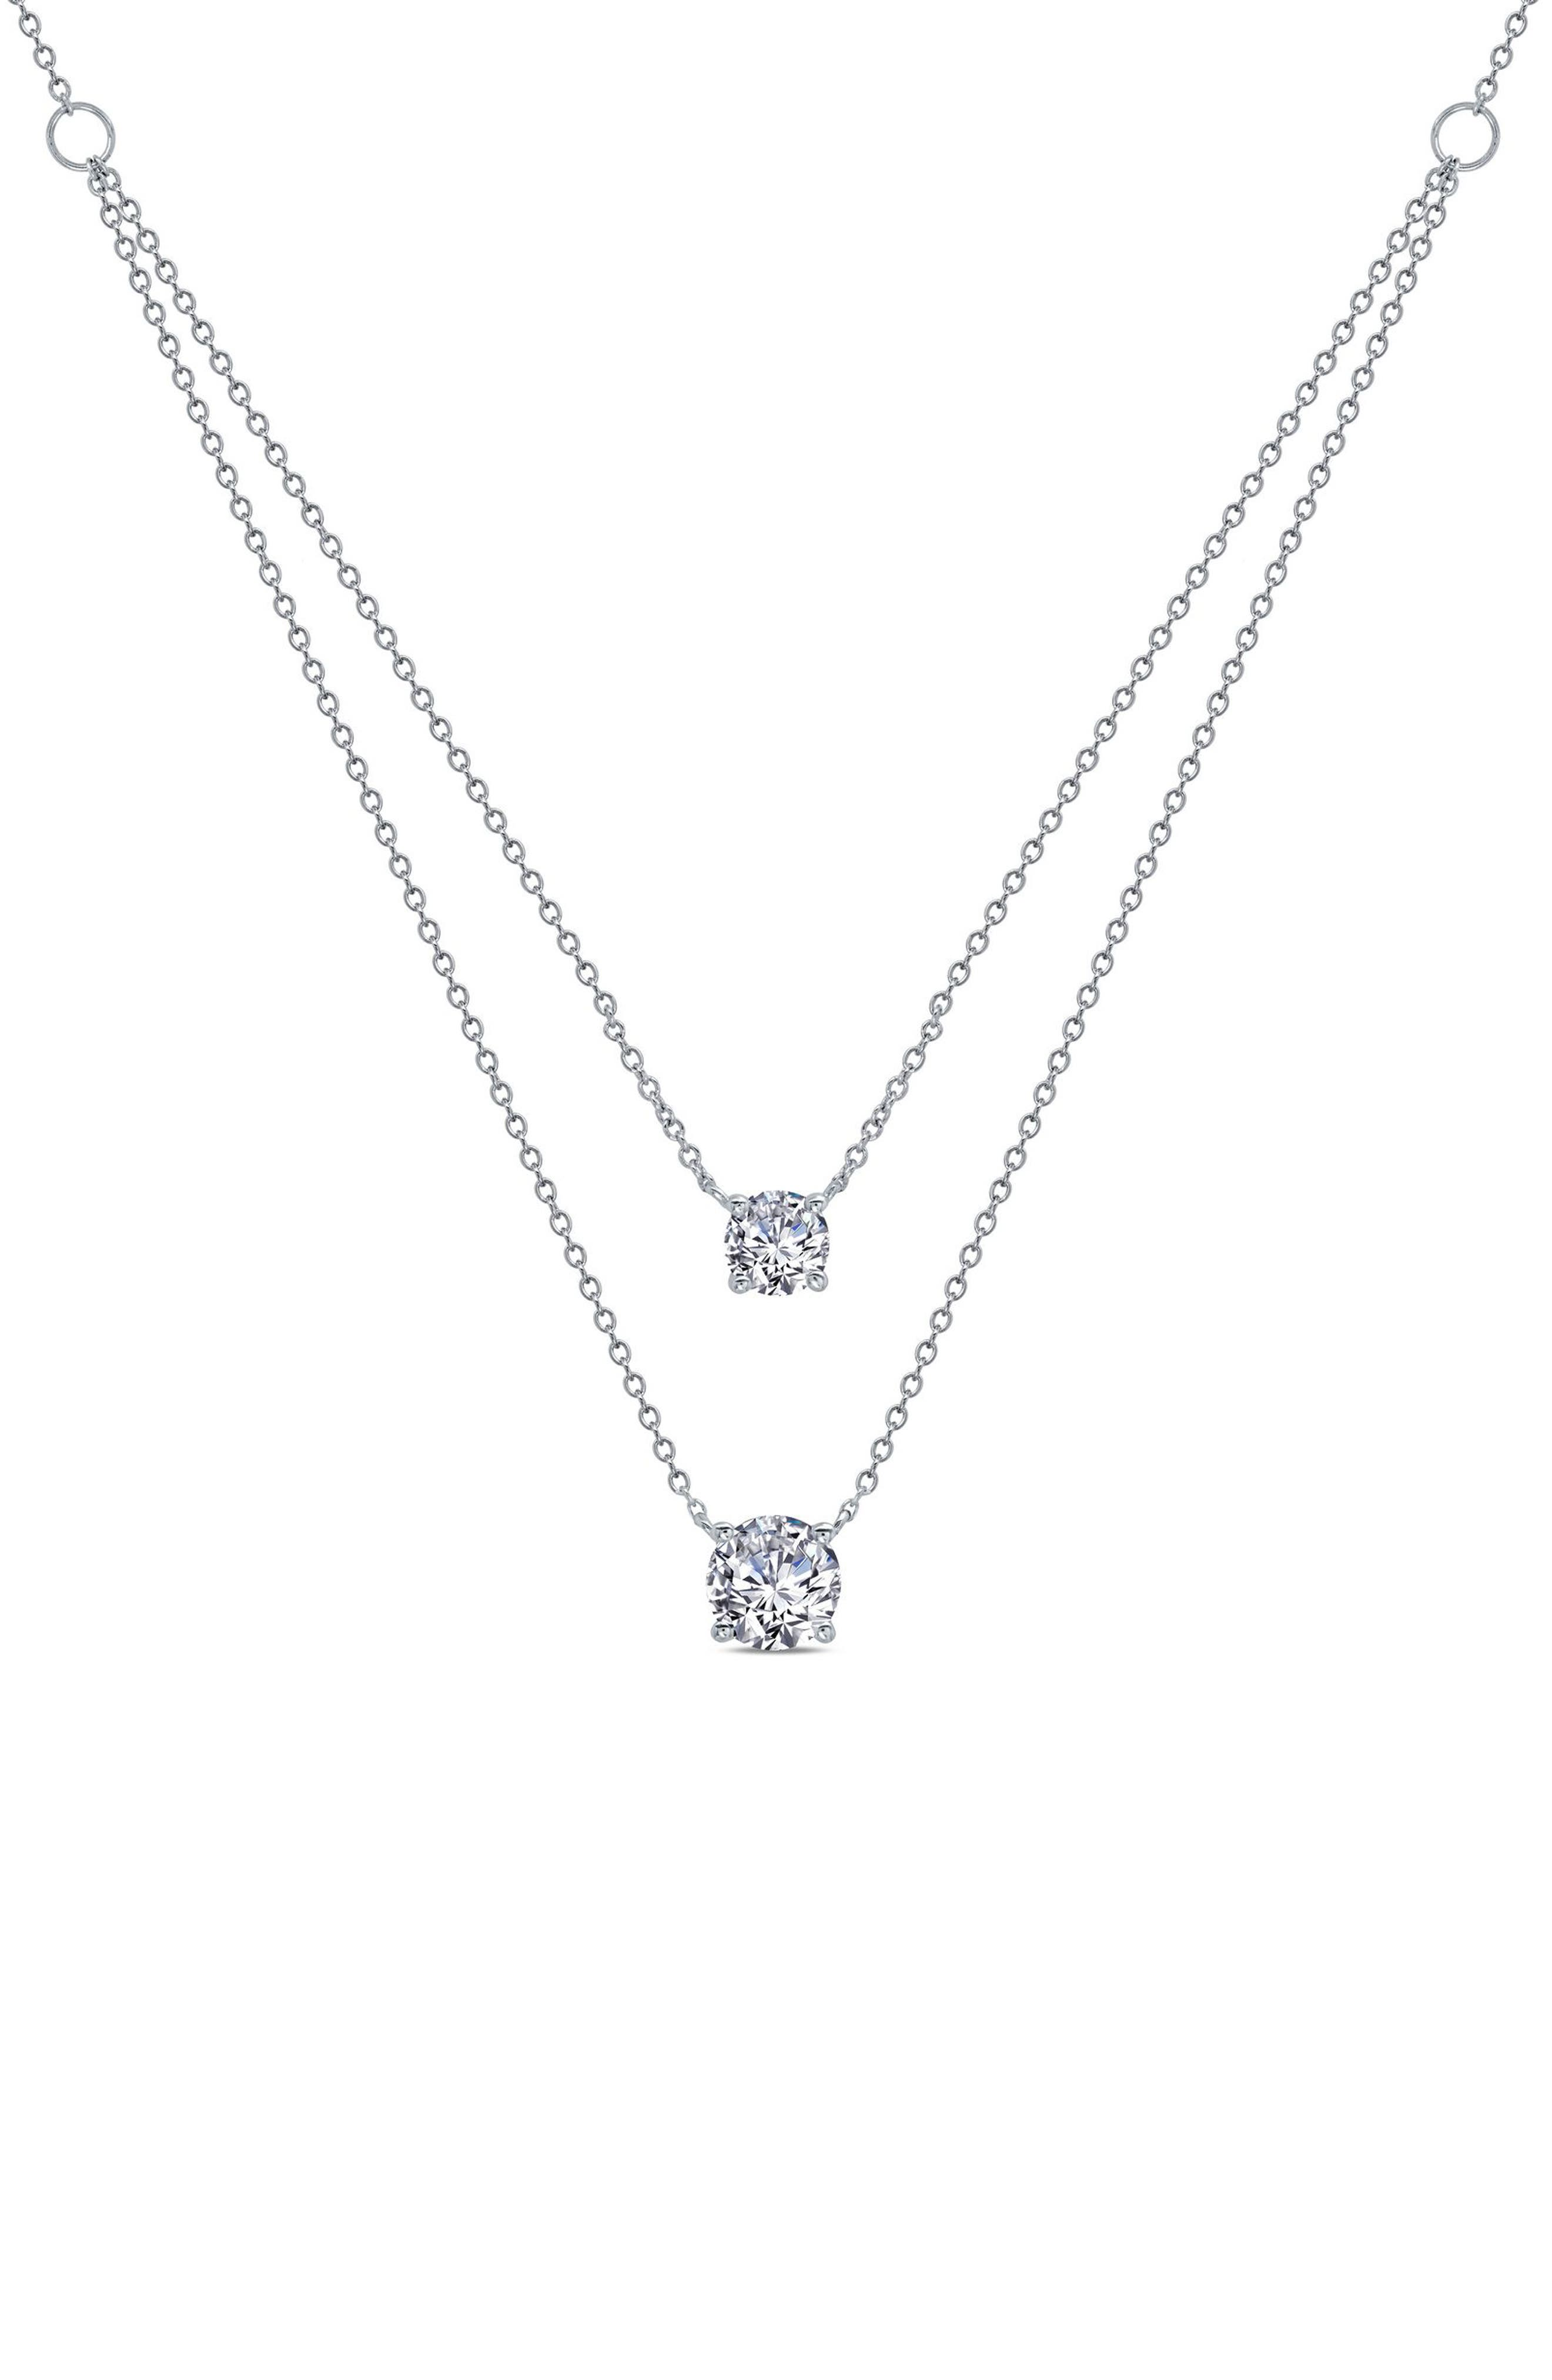 Slender chains suspend a pair of pendants set with sparkling simulated diamonds on this one-and-done layered necklace. Style Name: Lafonn Simulated Diamond Double Pendant Layered Necklace. Style Number: 6183408. Available in stores.